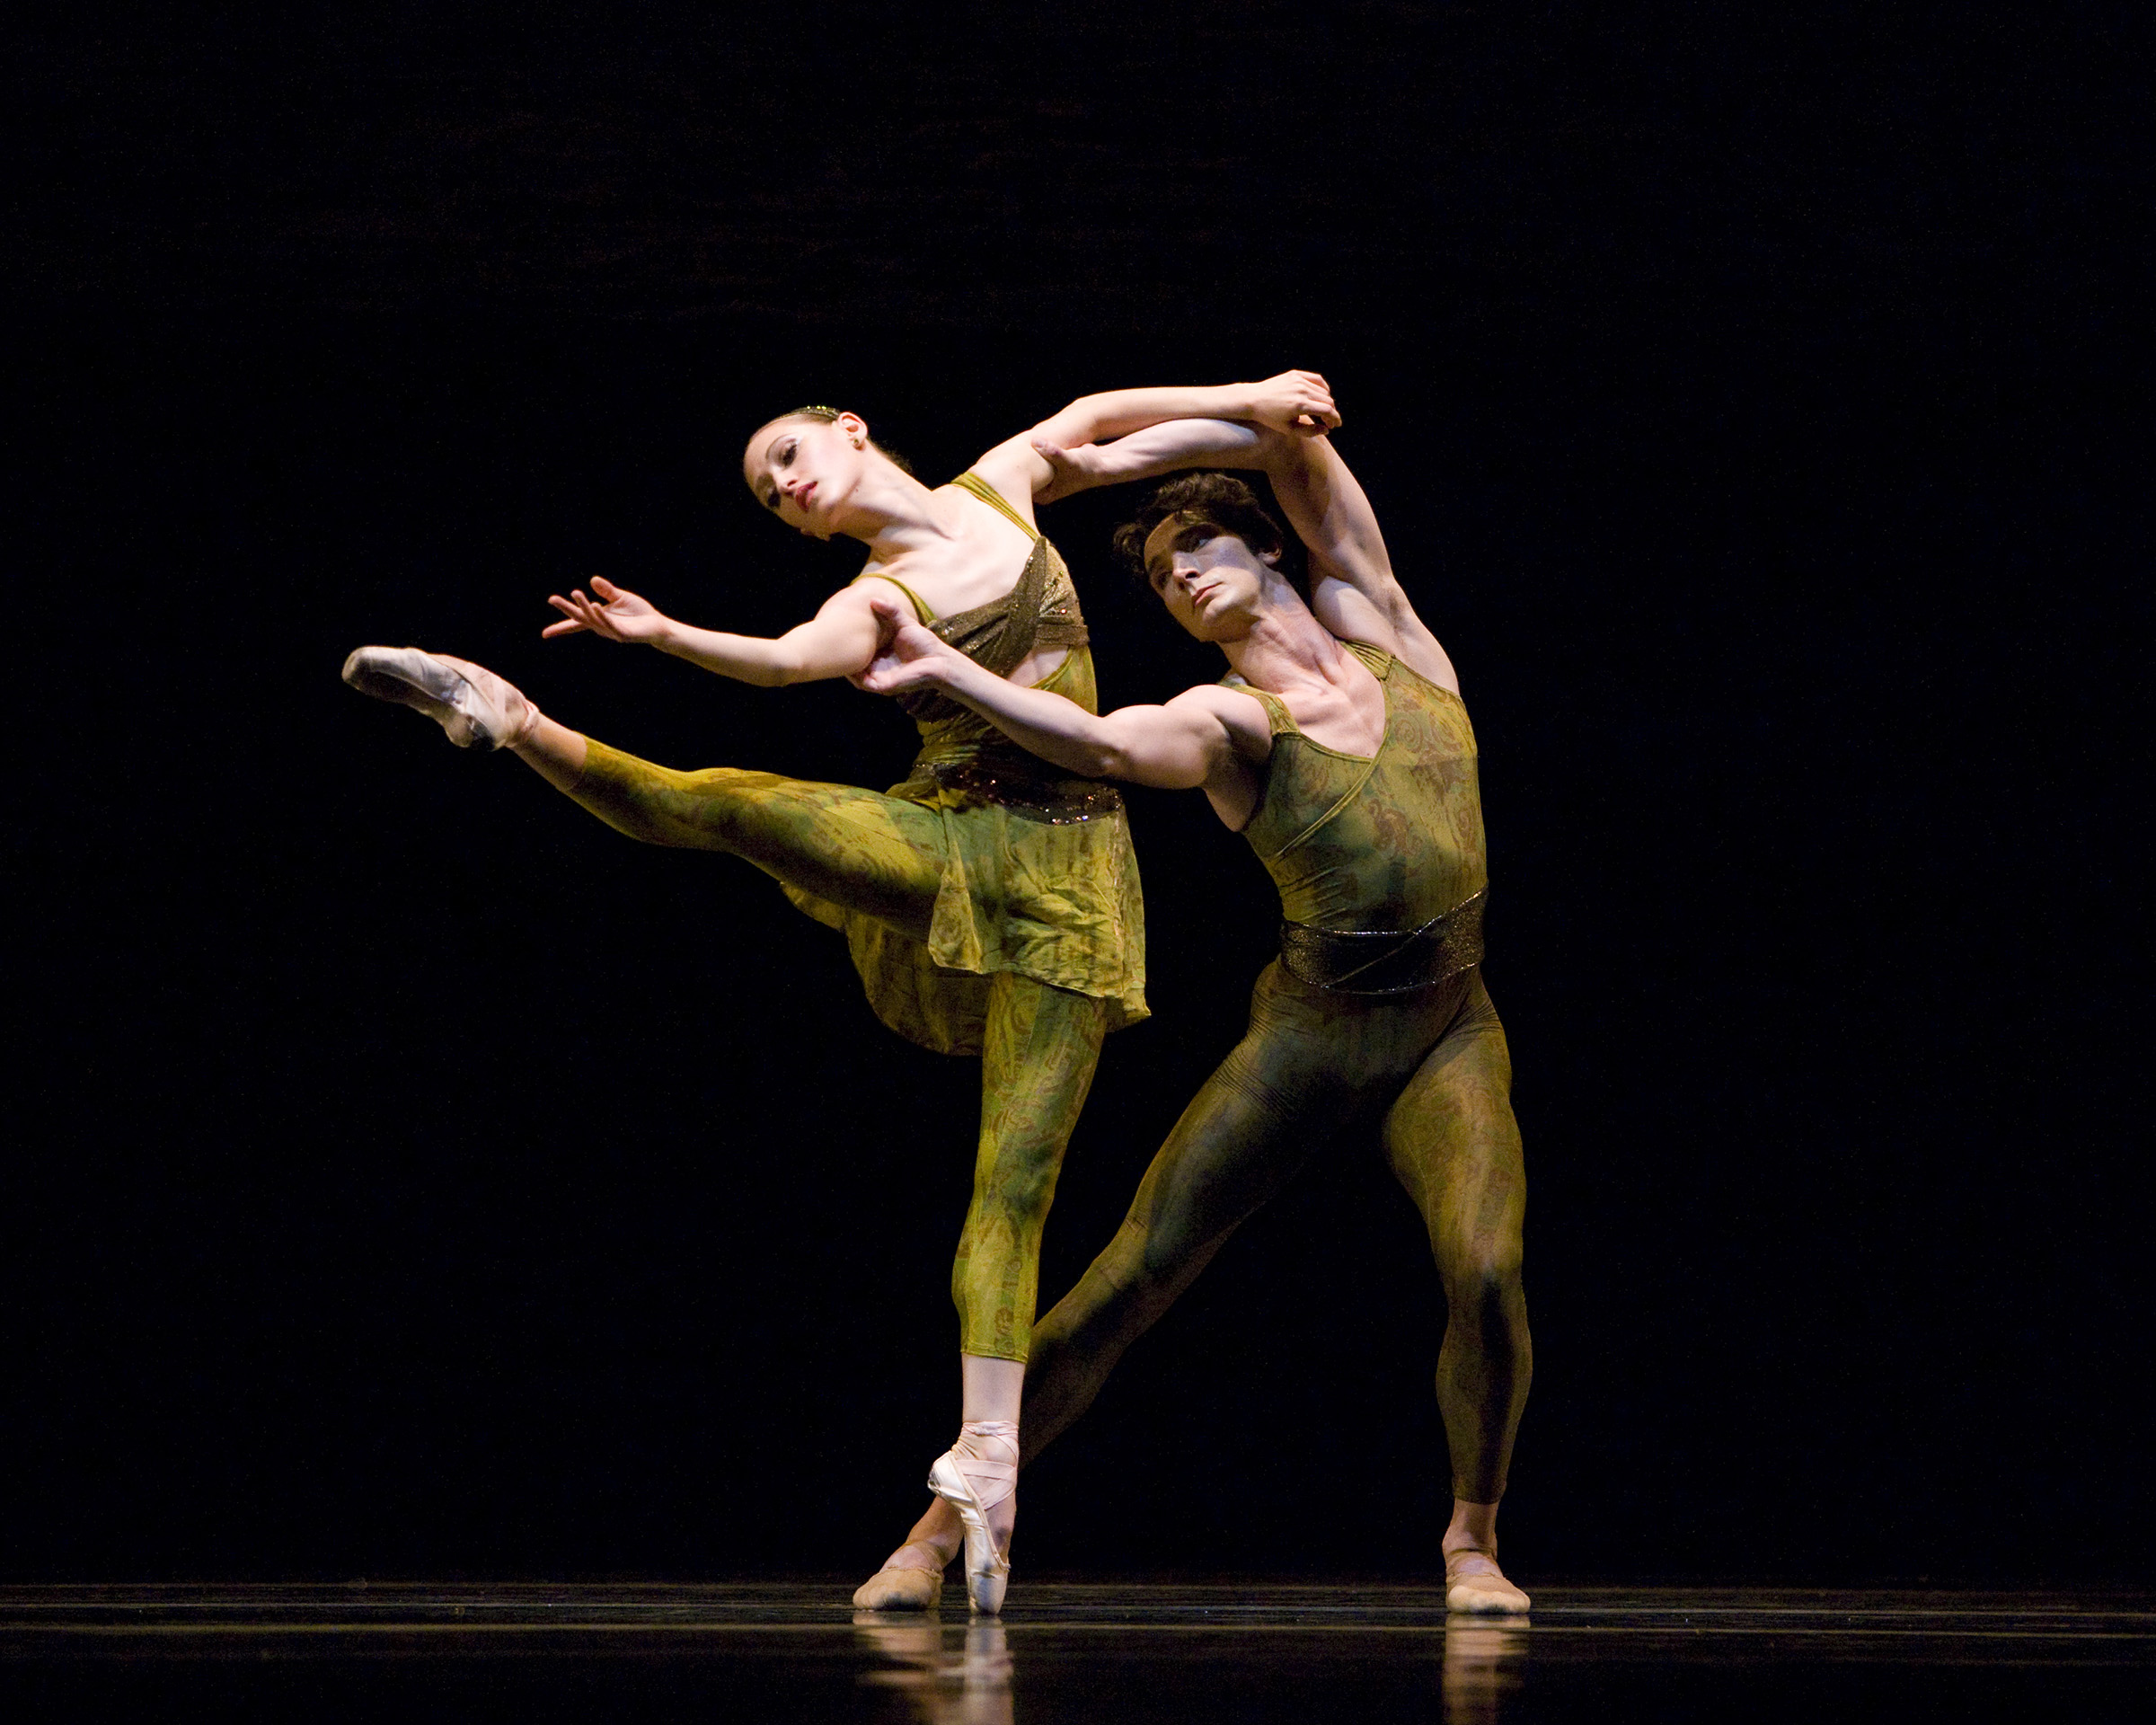 Sarah Van Patten and Pierre Francois-Vilanoba in Wheeldon's Within the Golden Hour Erik Tomasson